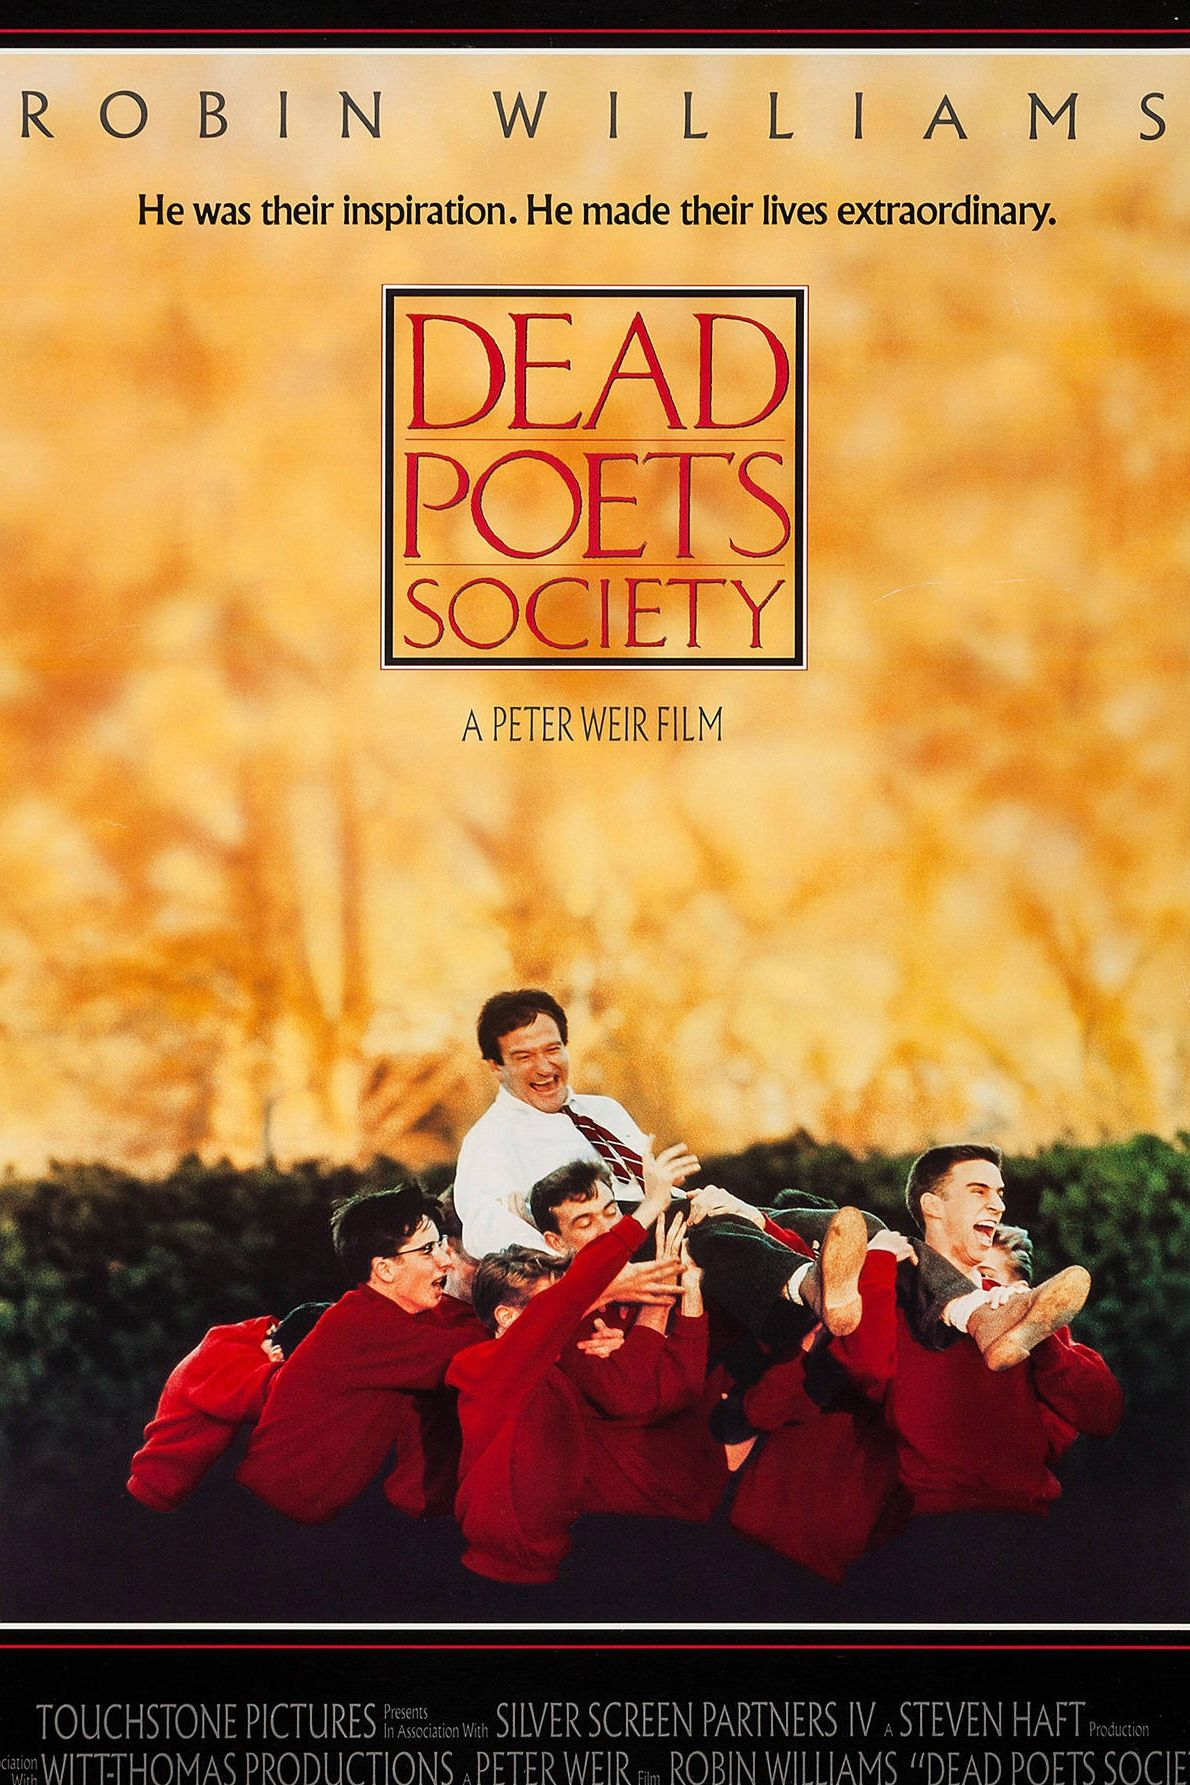 """Year: 1989Filmed at: St. Andrew's School in Middletown, Delaware.Director: Peter WeirReason it reminds us of fall: Back to school. Prep school days. Uniforms.Favorite Quote: """"No matter what anybody tells you, words and ideas can change the world."""" - John Keating"""